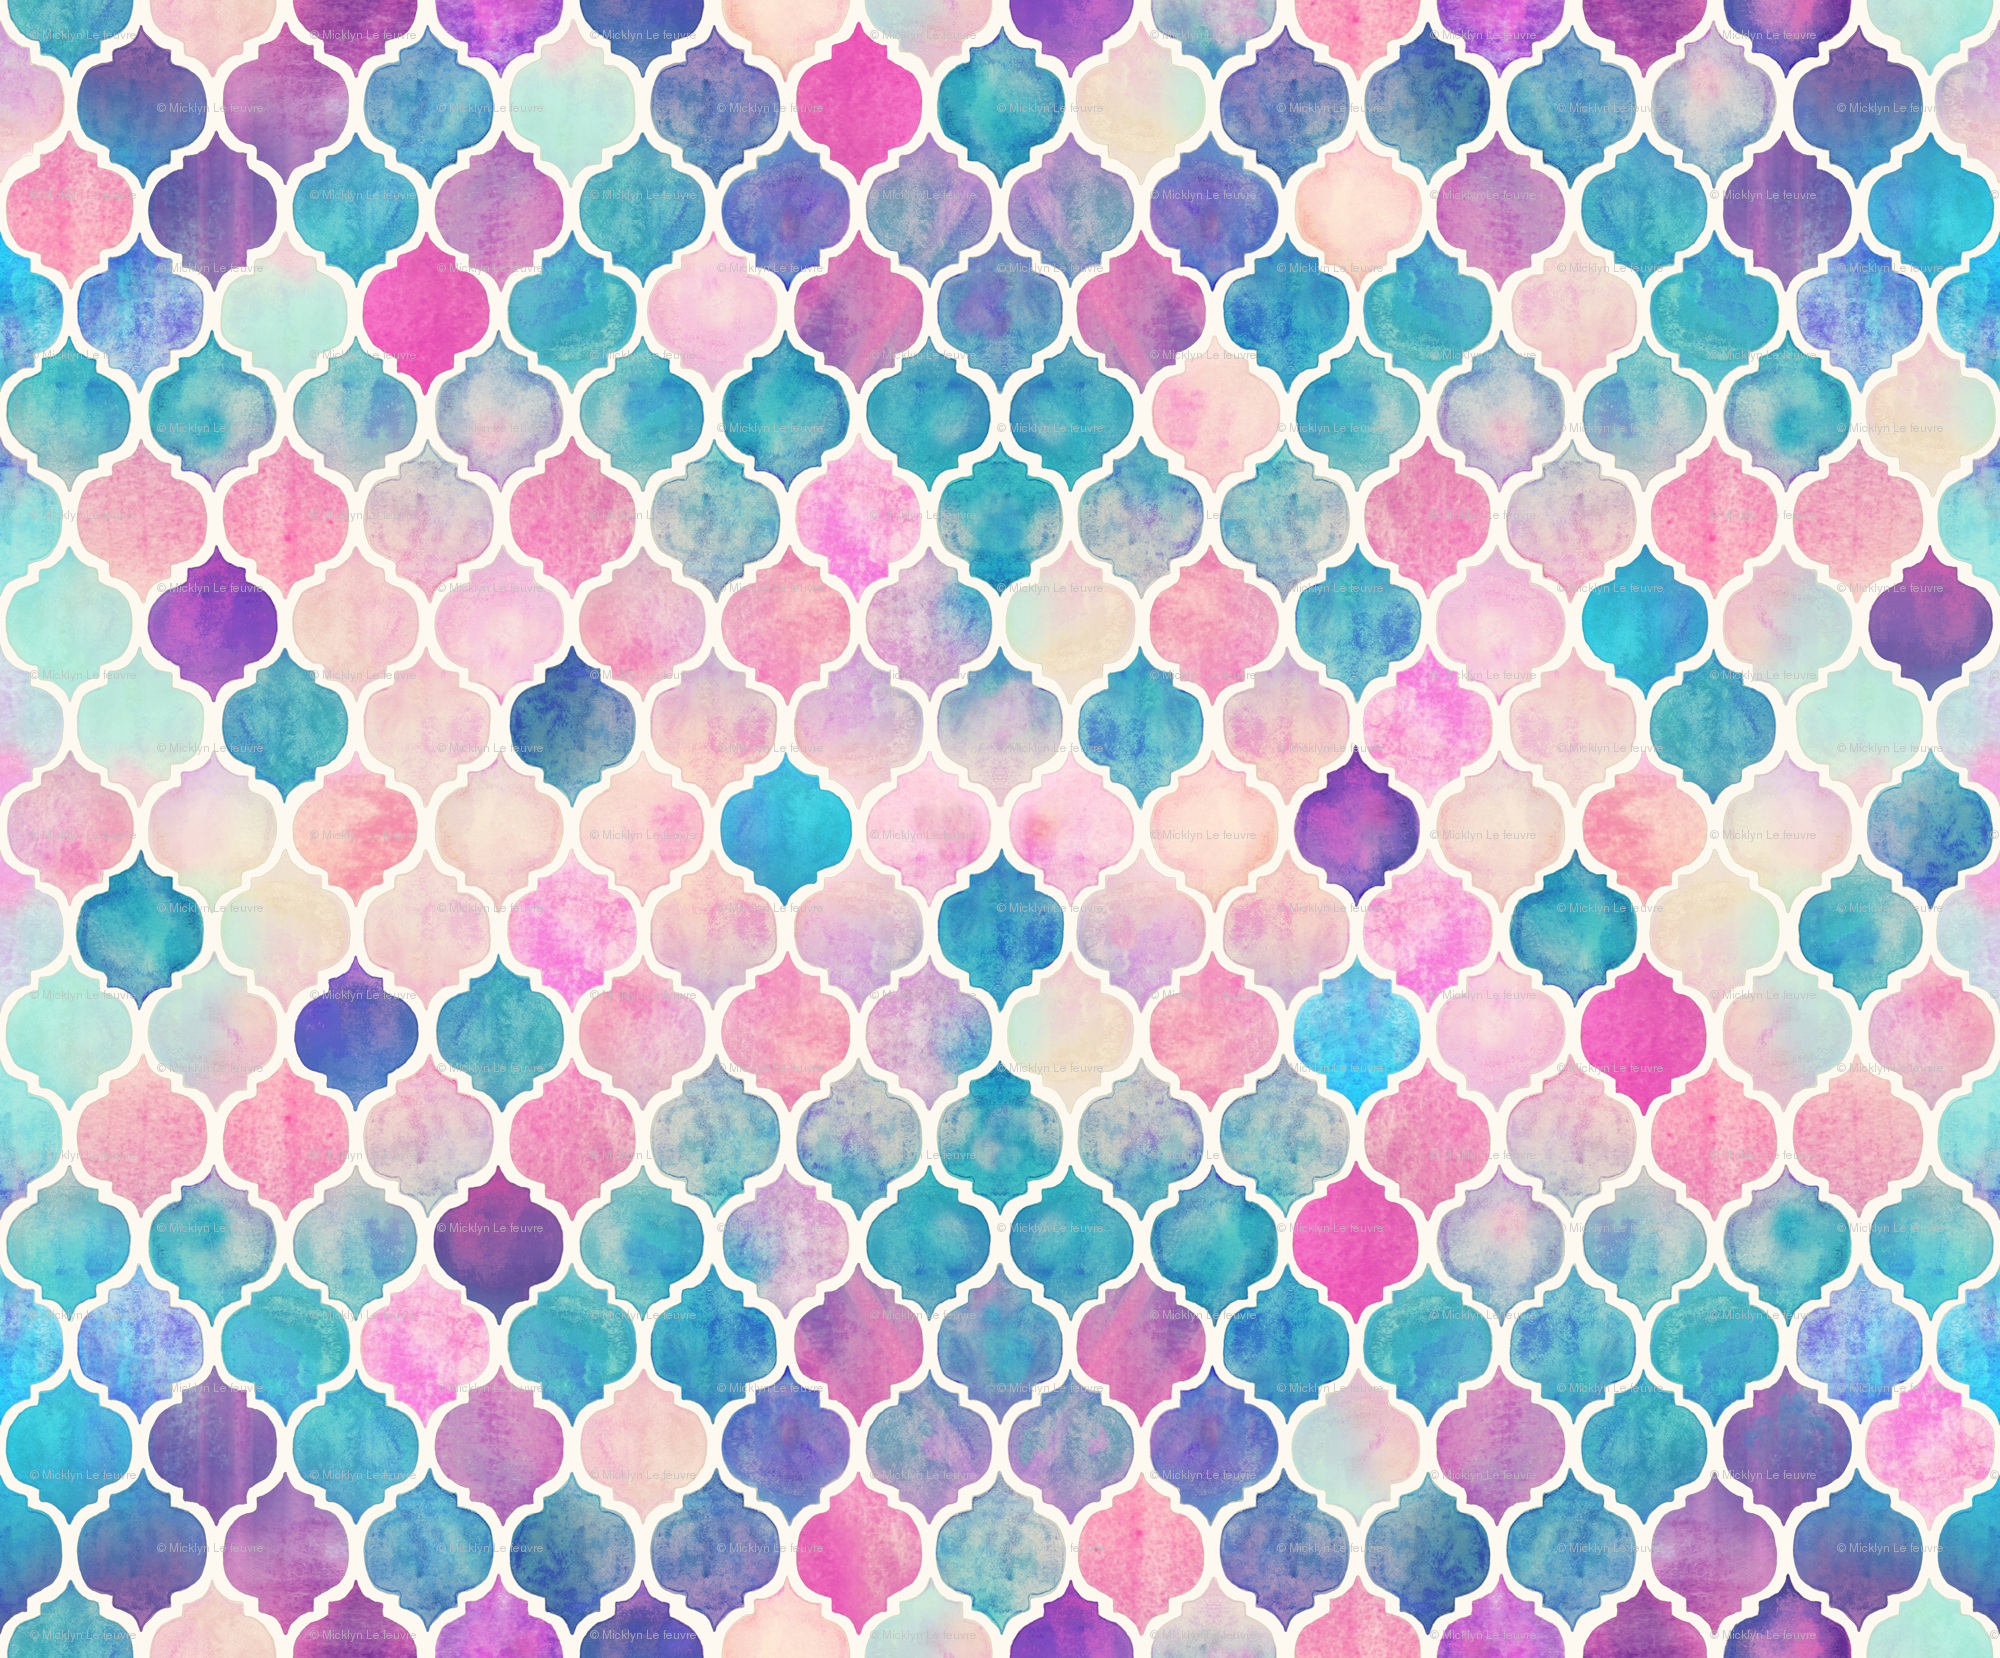 Pastel rainbow wallpaper hd for desktop 2000x1658 px for Pastel galaxy fabric